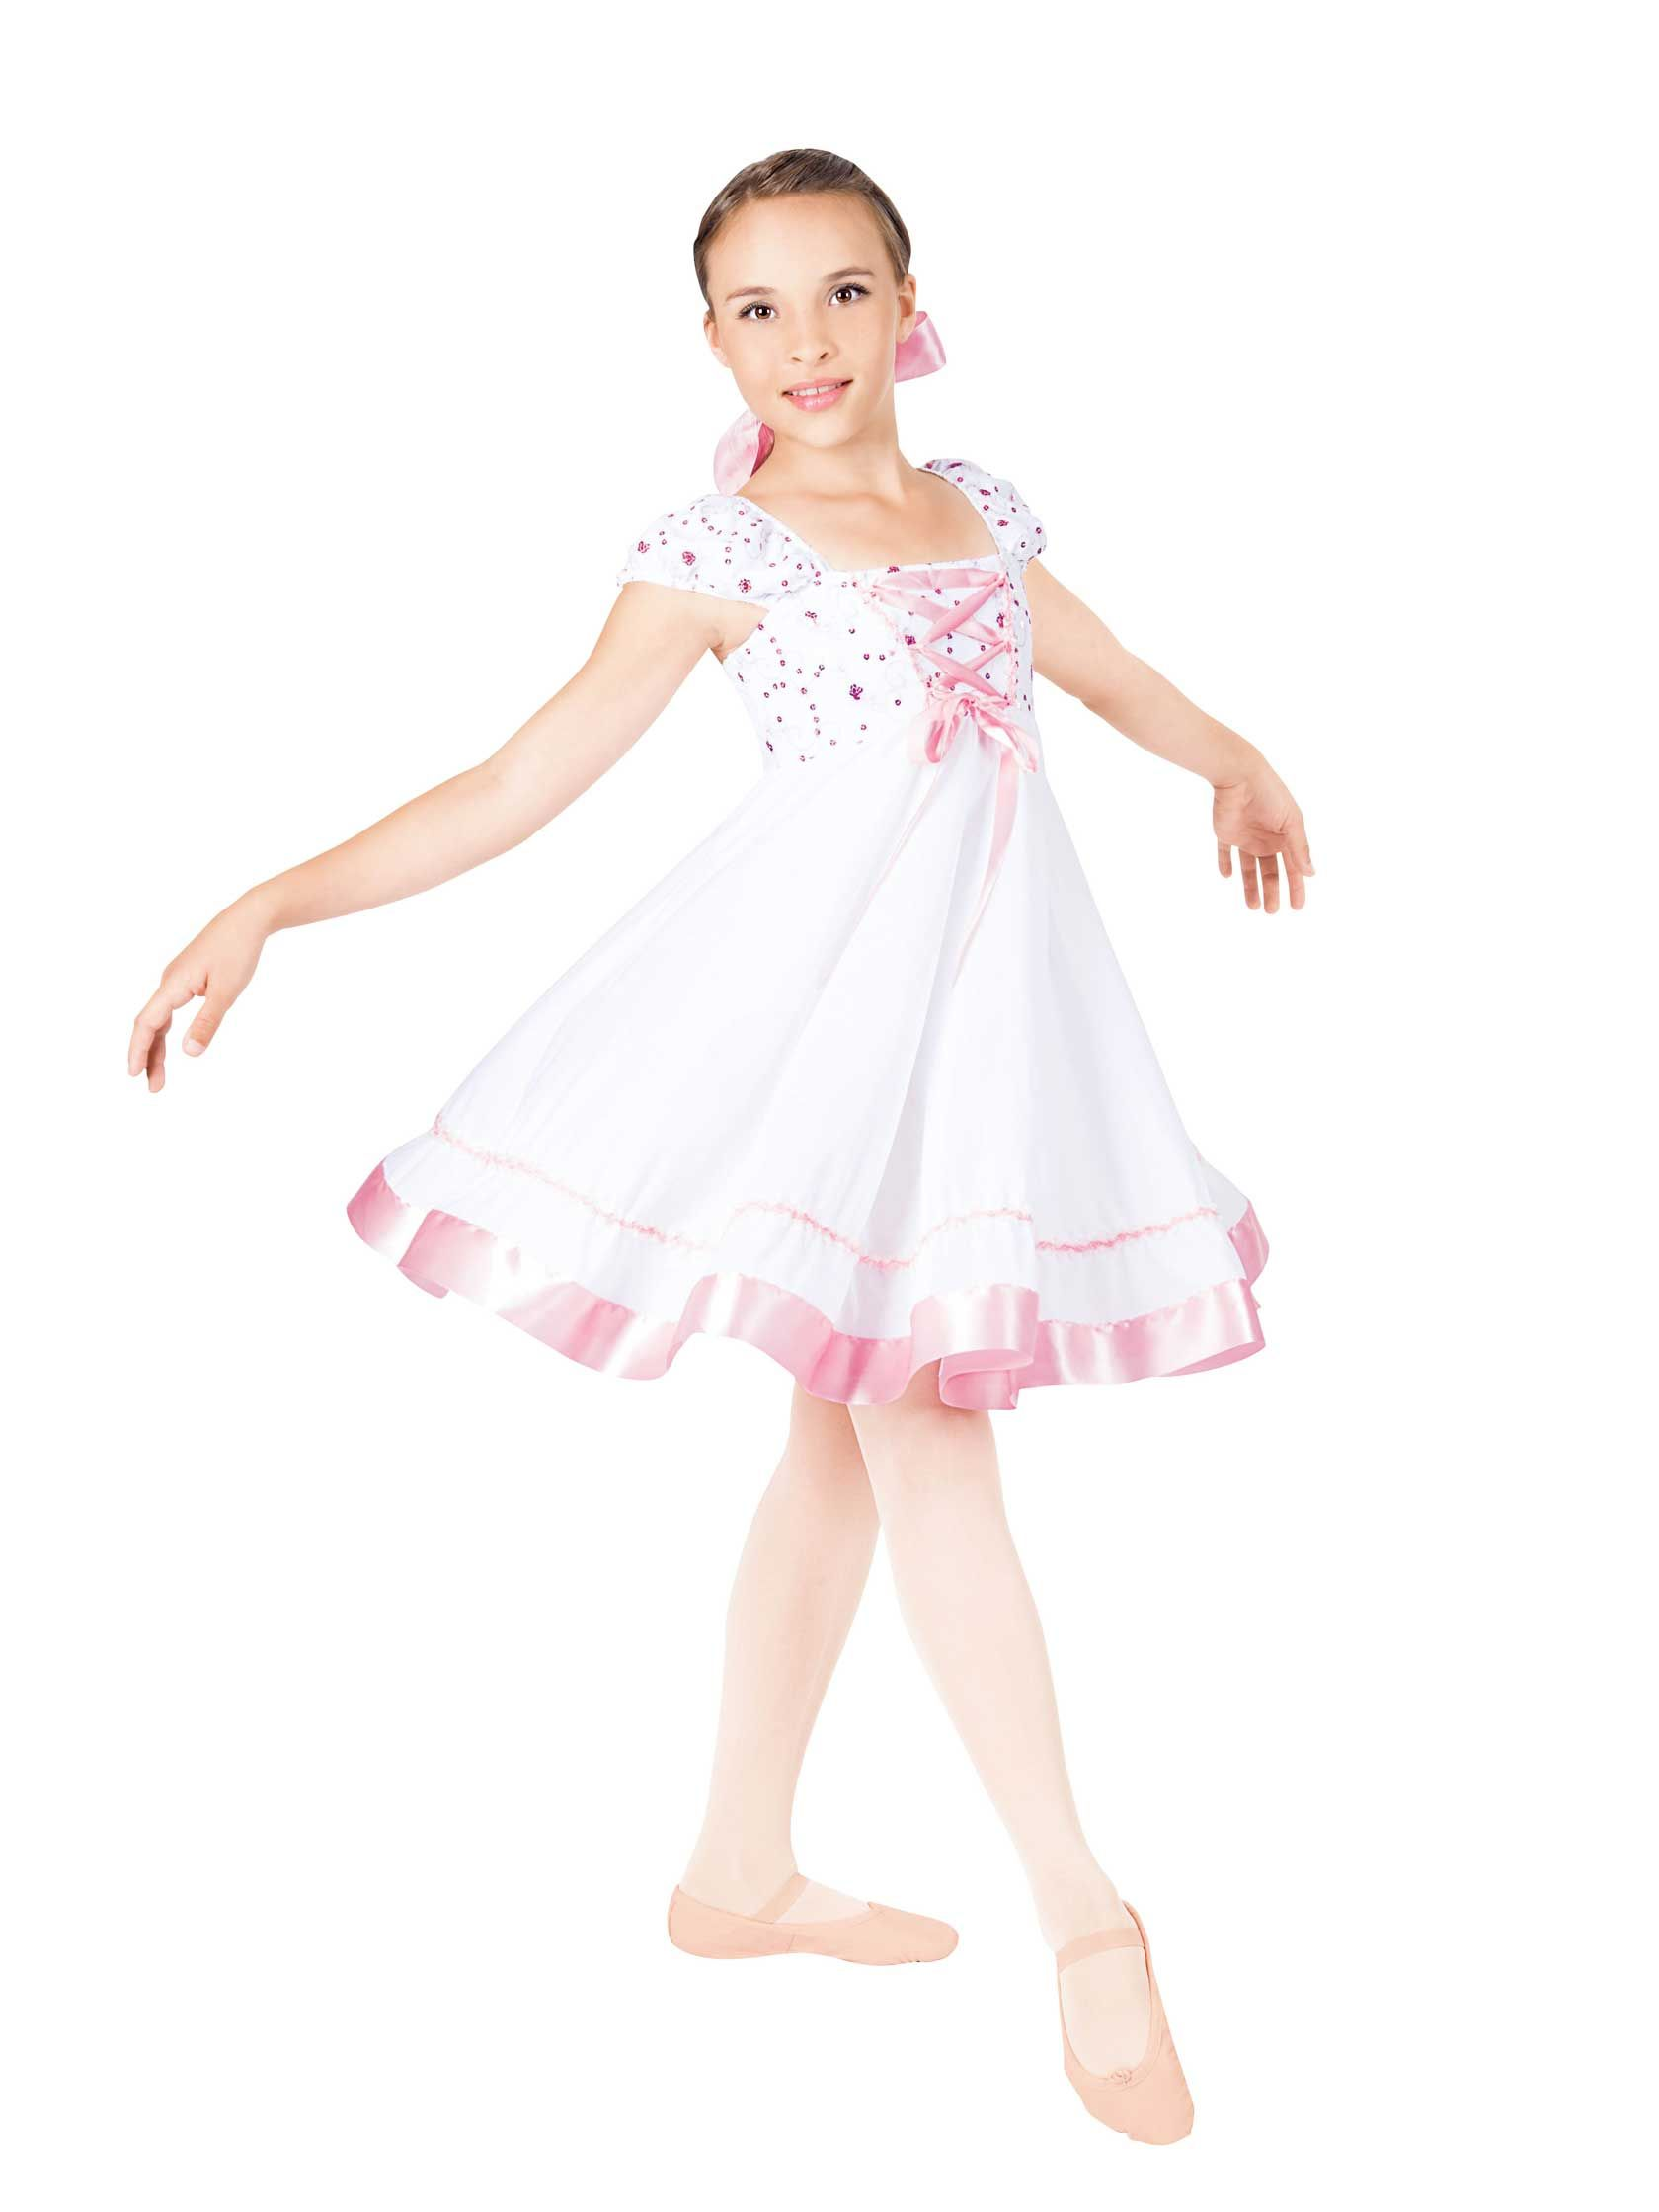 some little girls wore this at the 2013 recital where i do dance